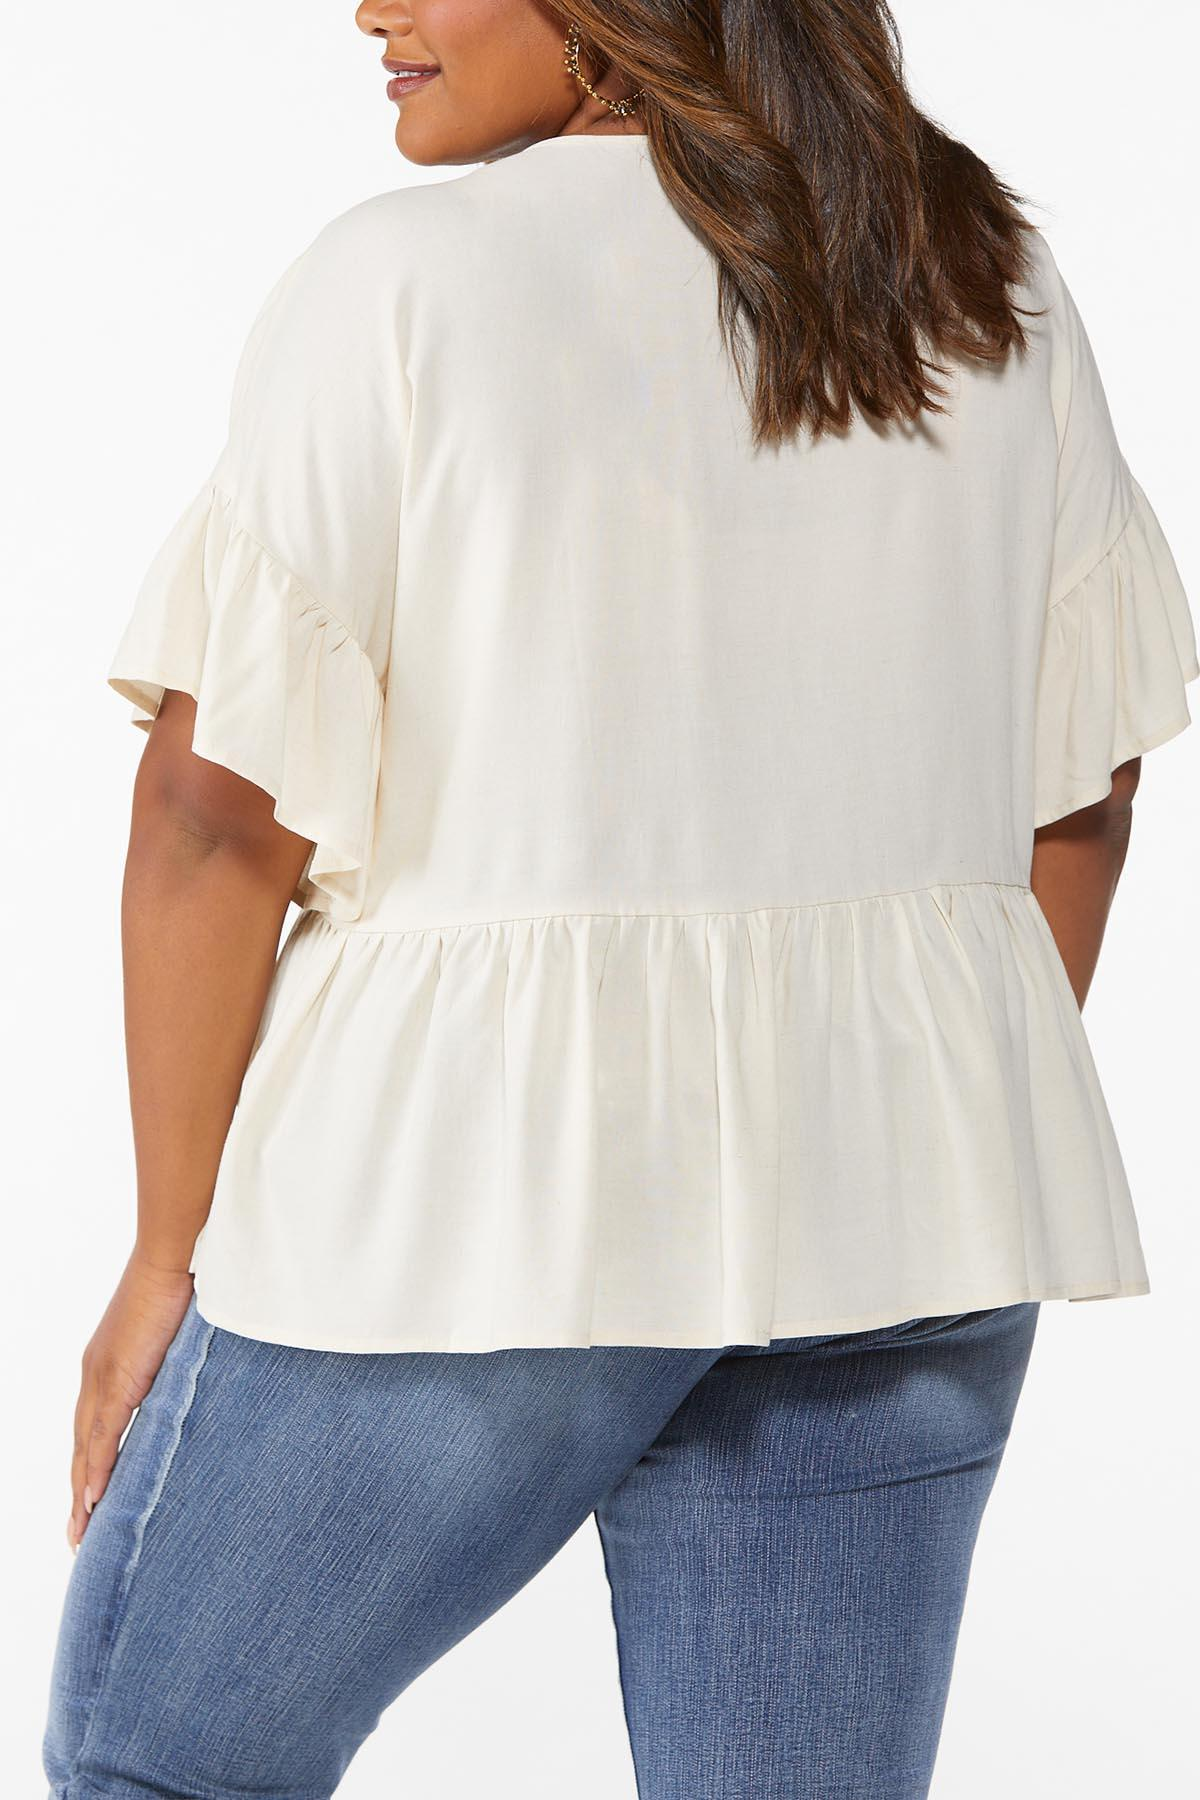 Plus Size Embroidered Poet Top (Item #44643830)